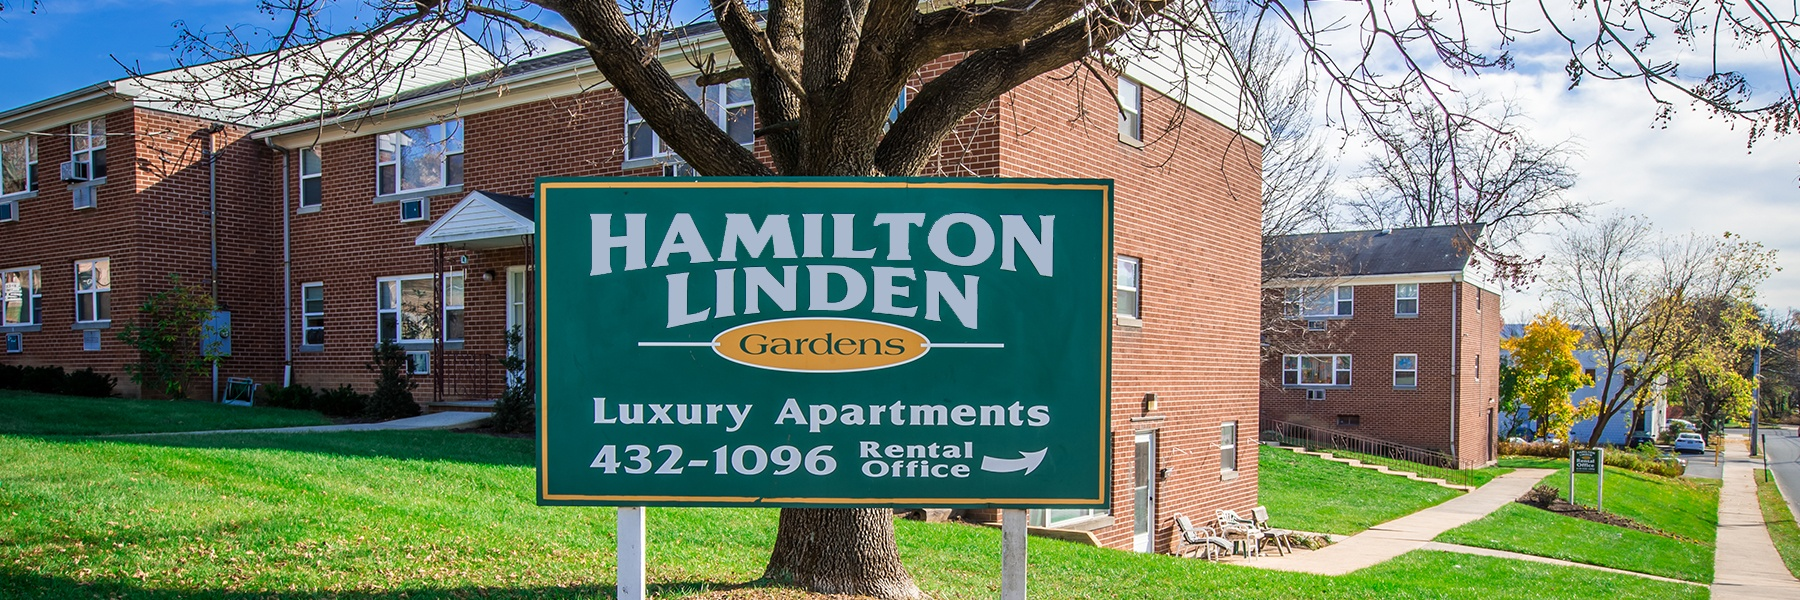 Hamilton Linden Gardens Apartments For Rent in Allentown, PA Welcome